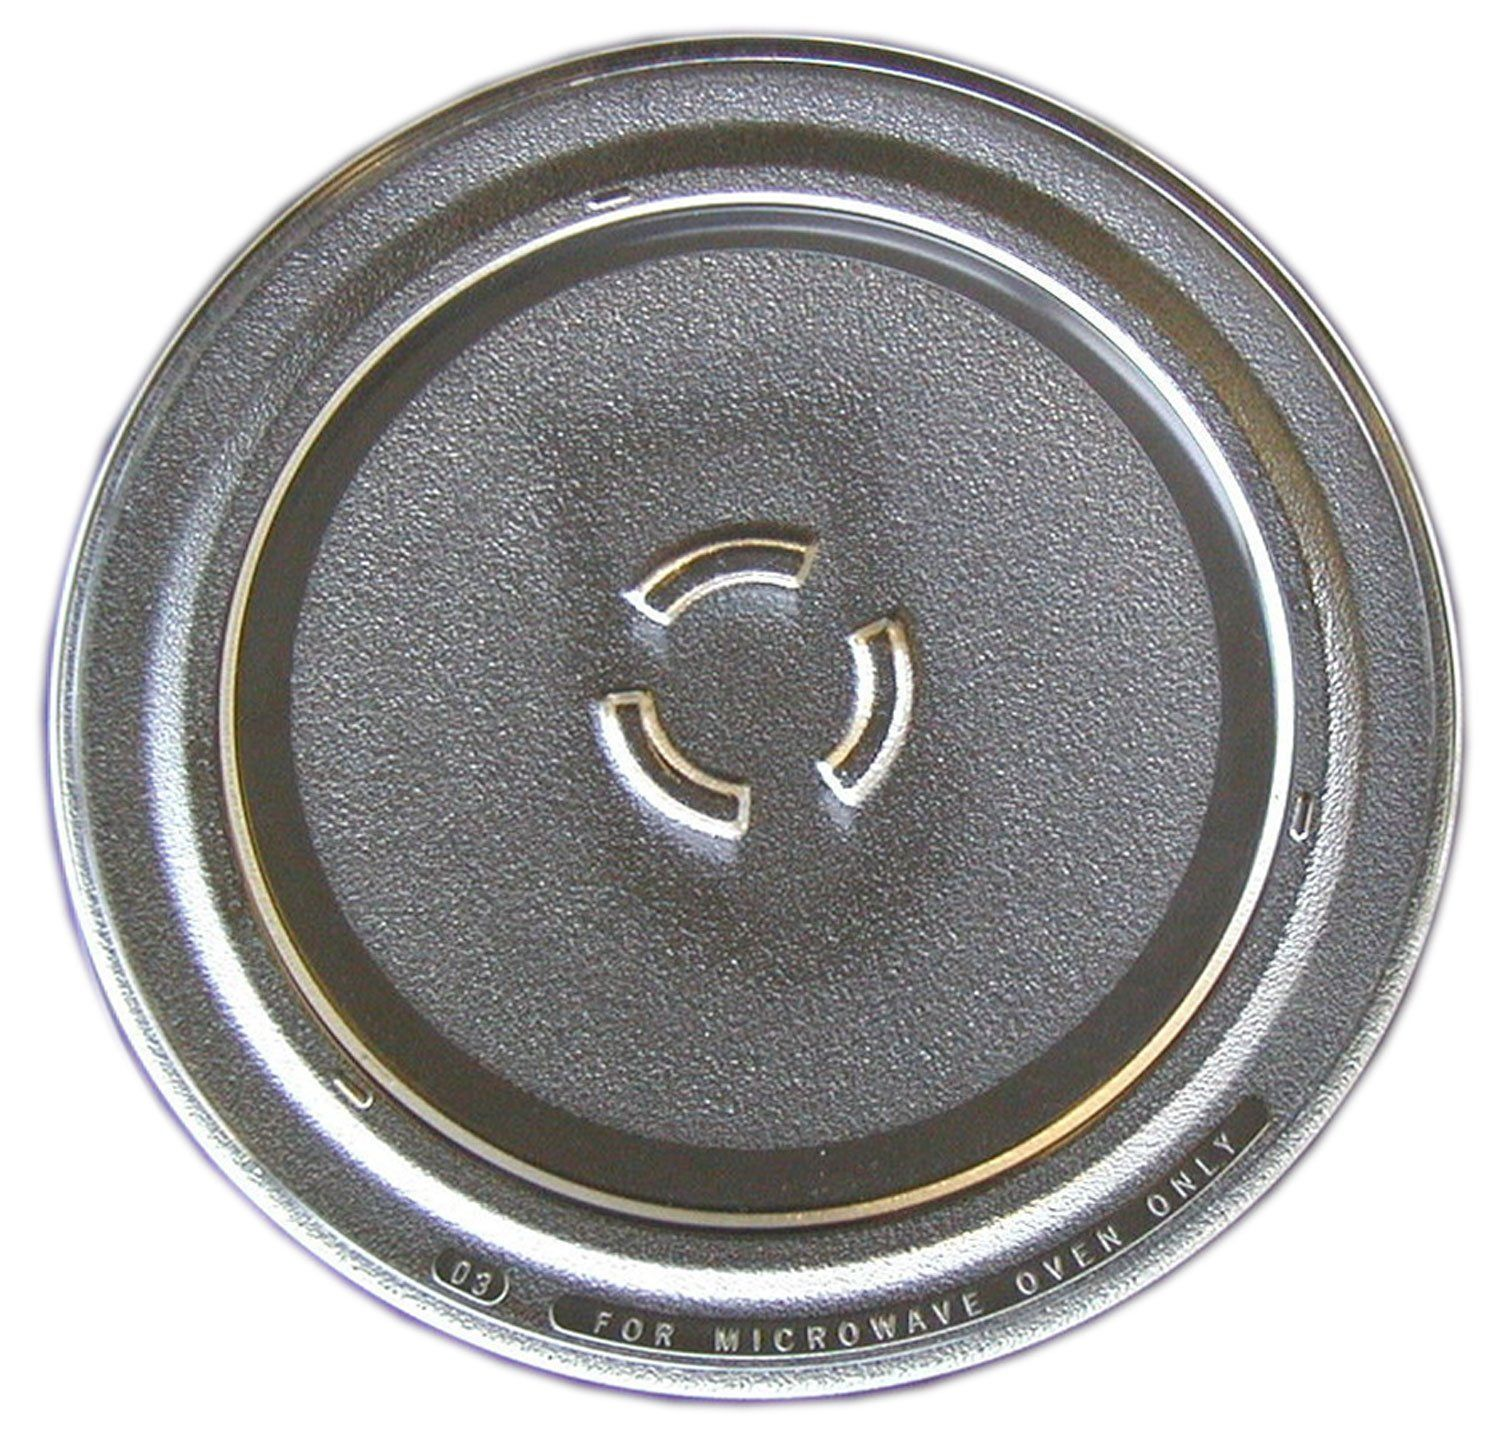 Microwave Plate Tray that works with Roper MHE14XMQ0